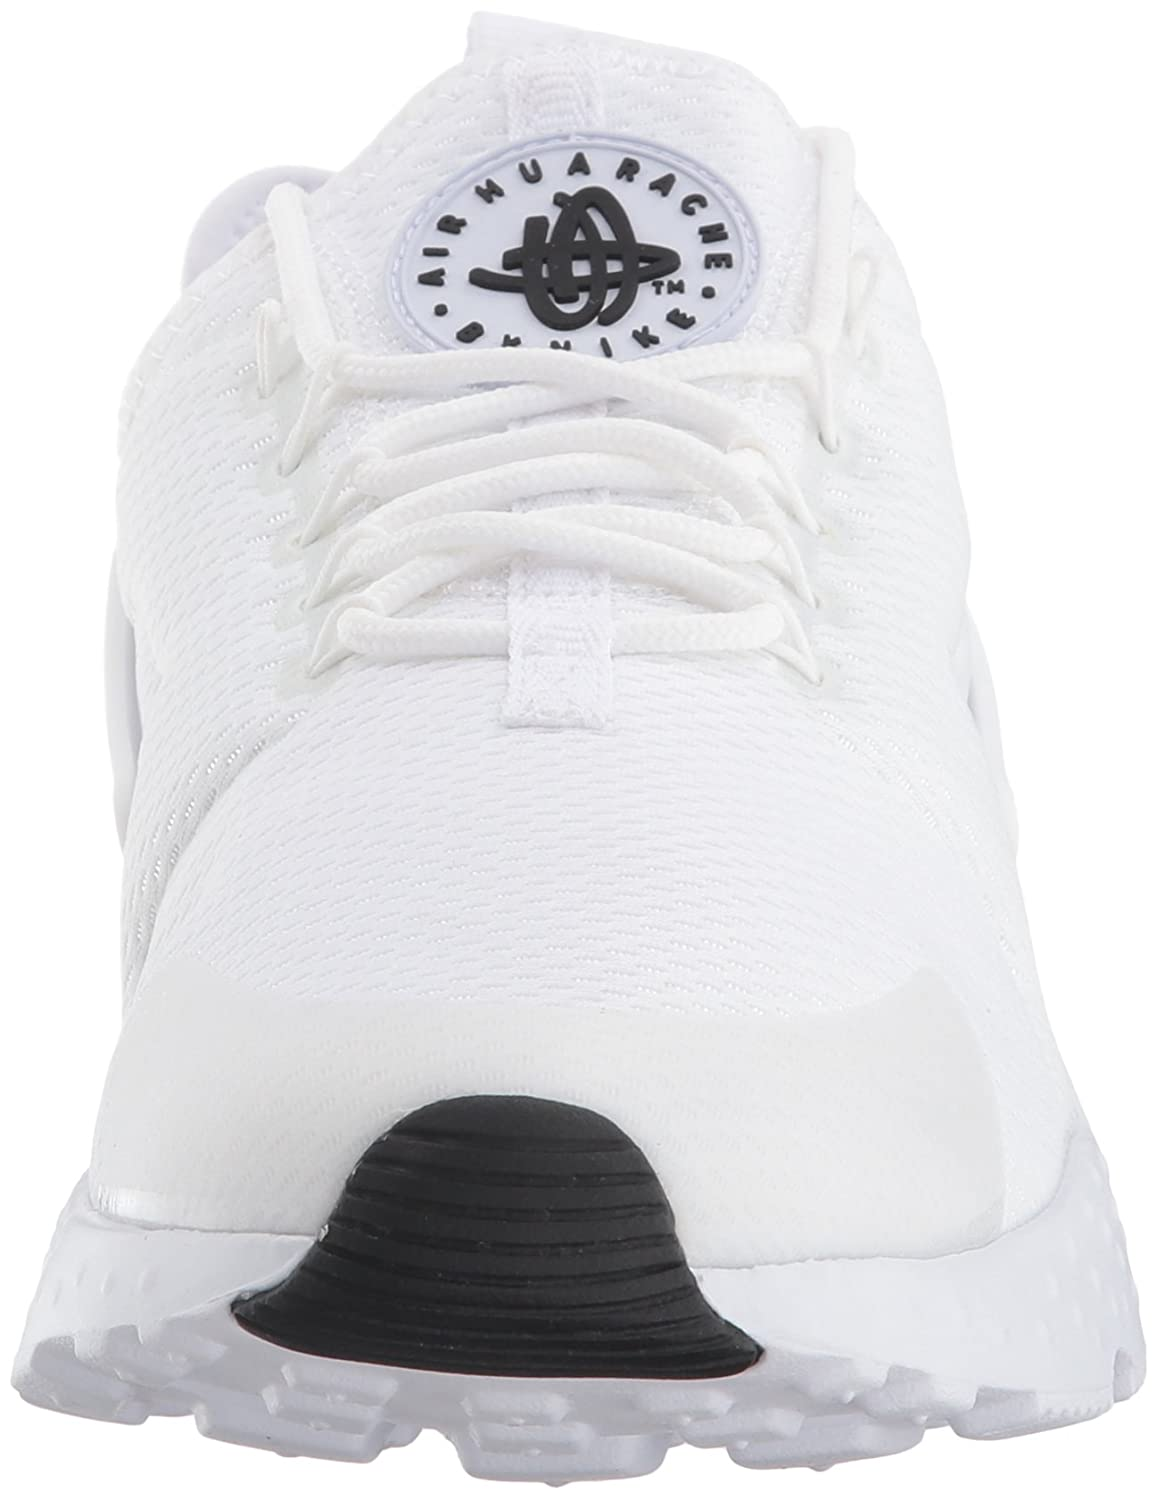 NIKE Women's Air Huarache Run Ultra Running Shoe B00IBOH9AG 6 B(M) US|White/White/White/Black